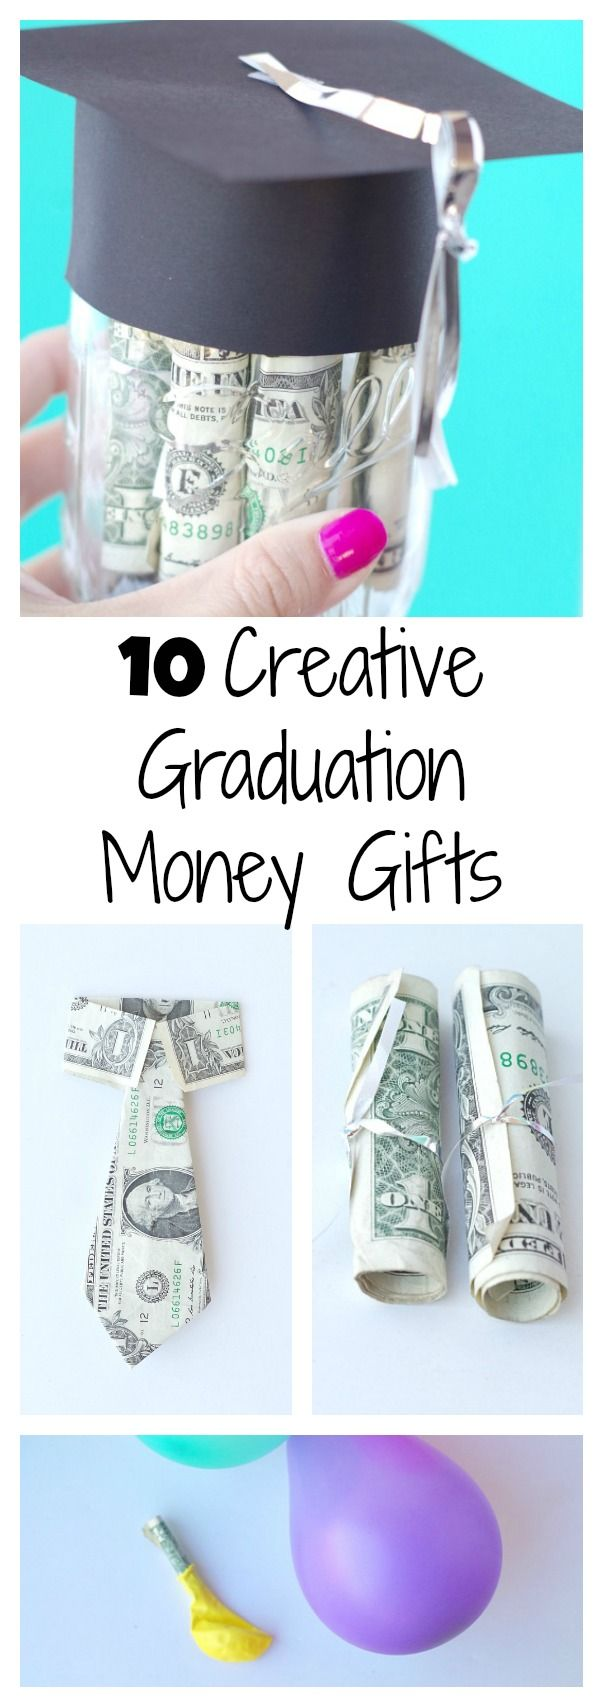 best 20 creative money gifts ideas on pinterest cash gifts